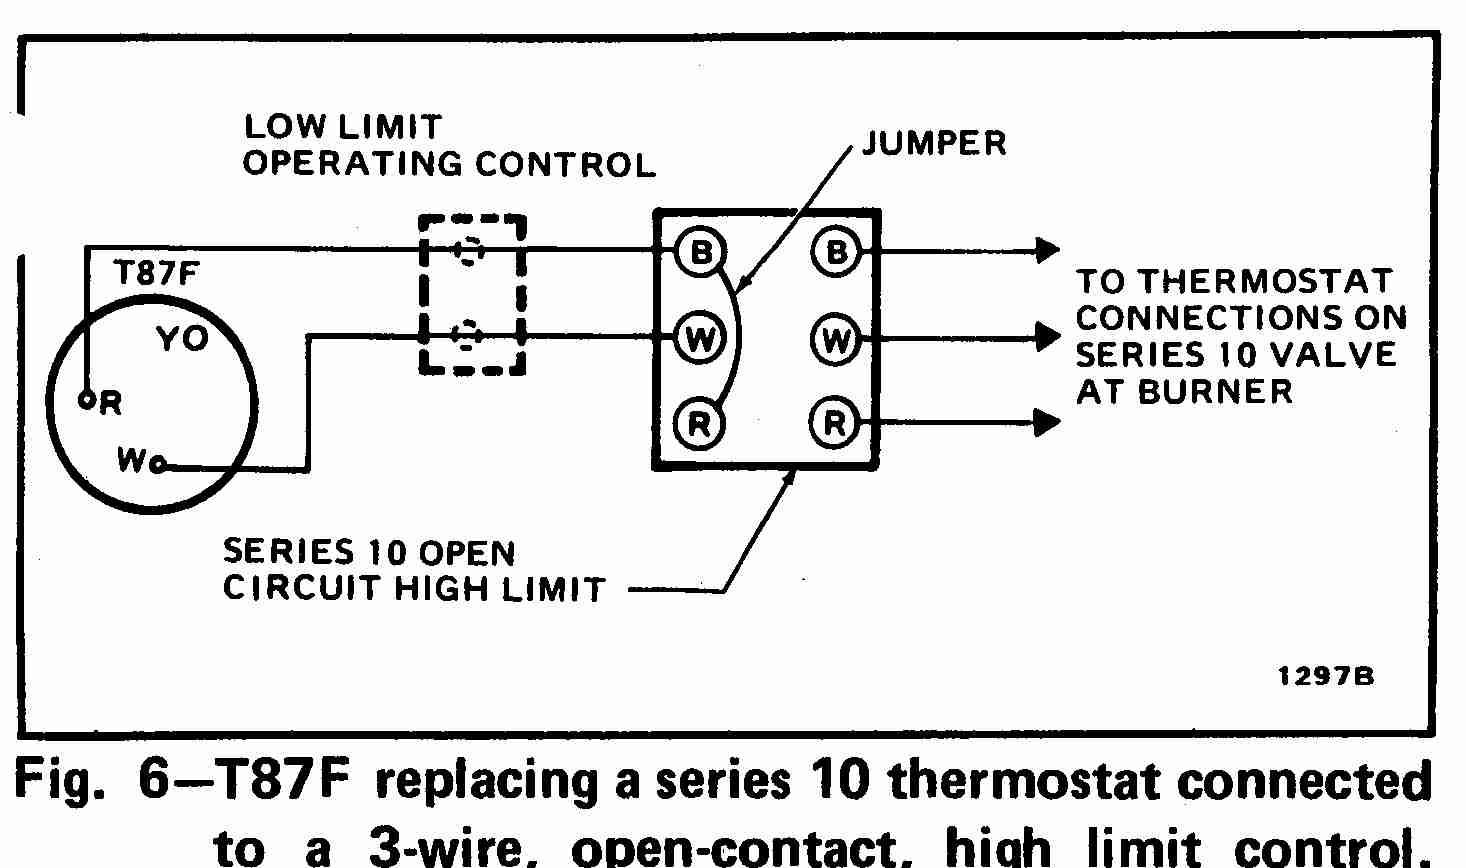 TT_T87F_0002_3WHL_DJF room thermostat wiring diagrams for hvac systems wiring diagram for a thermostat at bakdesigns.co